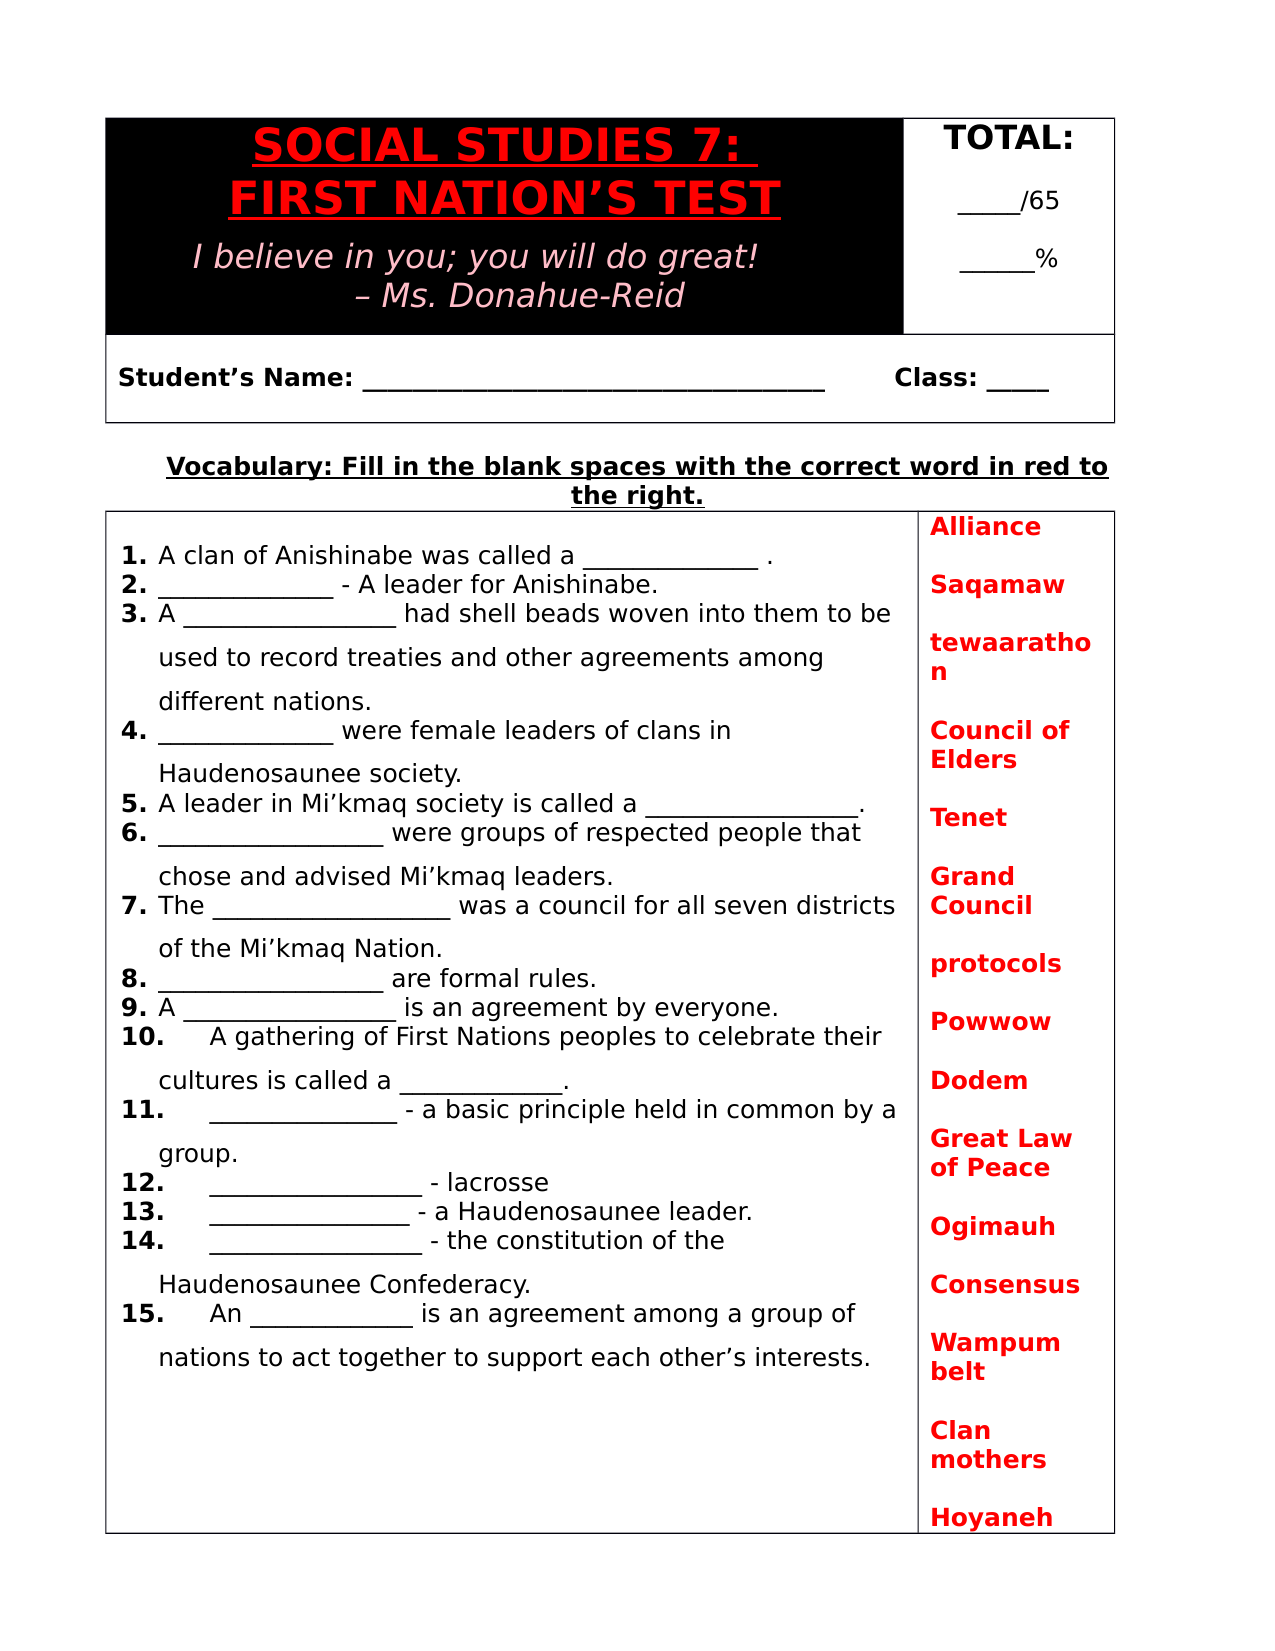 grade 7 social studies Free social studies worksheets, games and projects for preschool, kindergarten, 1st grade, 2nd grade, 3rd grade, 4th grade and 5th grade kids.